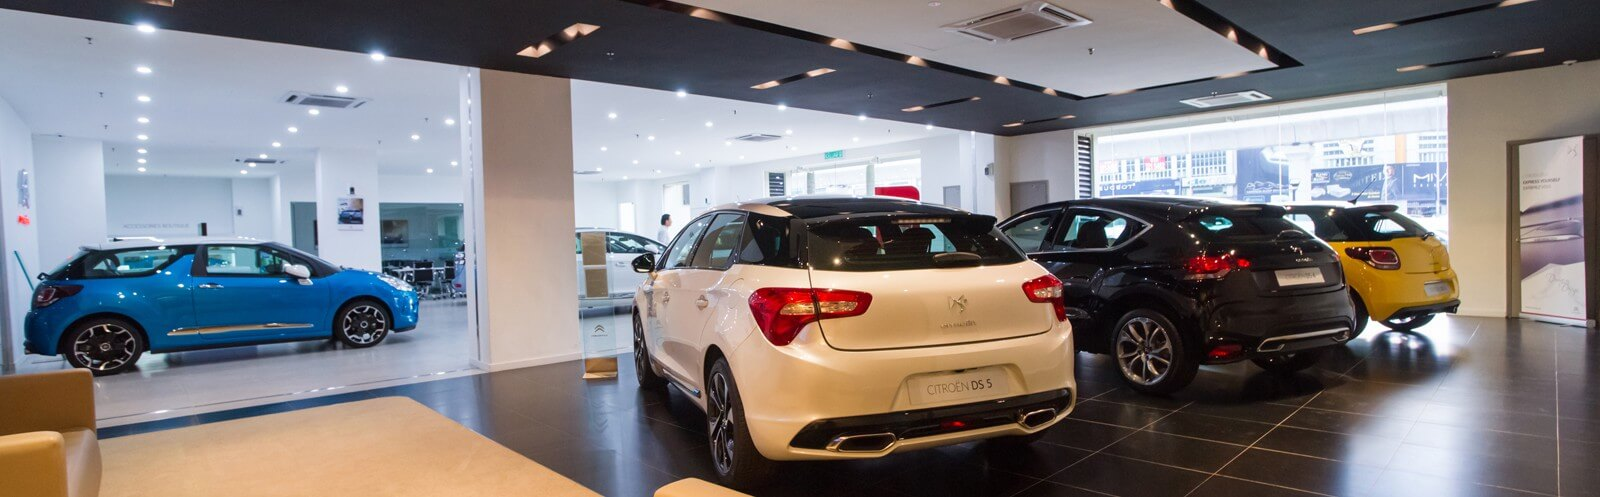 Car Showroom / Servce Centre Design Renovation